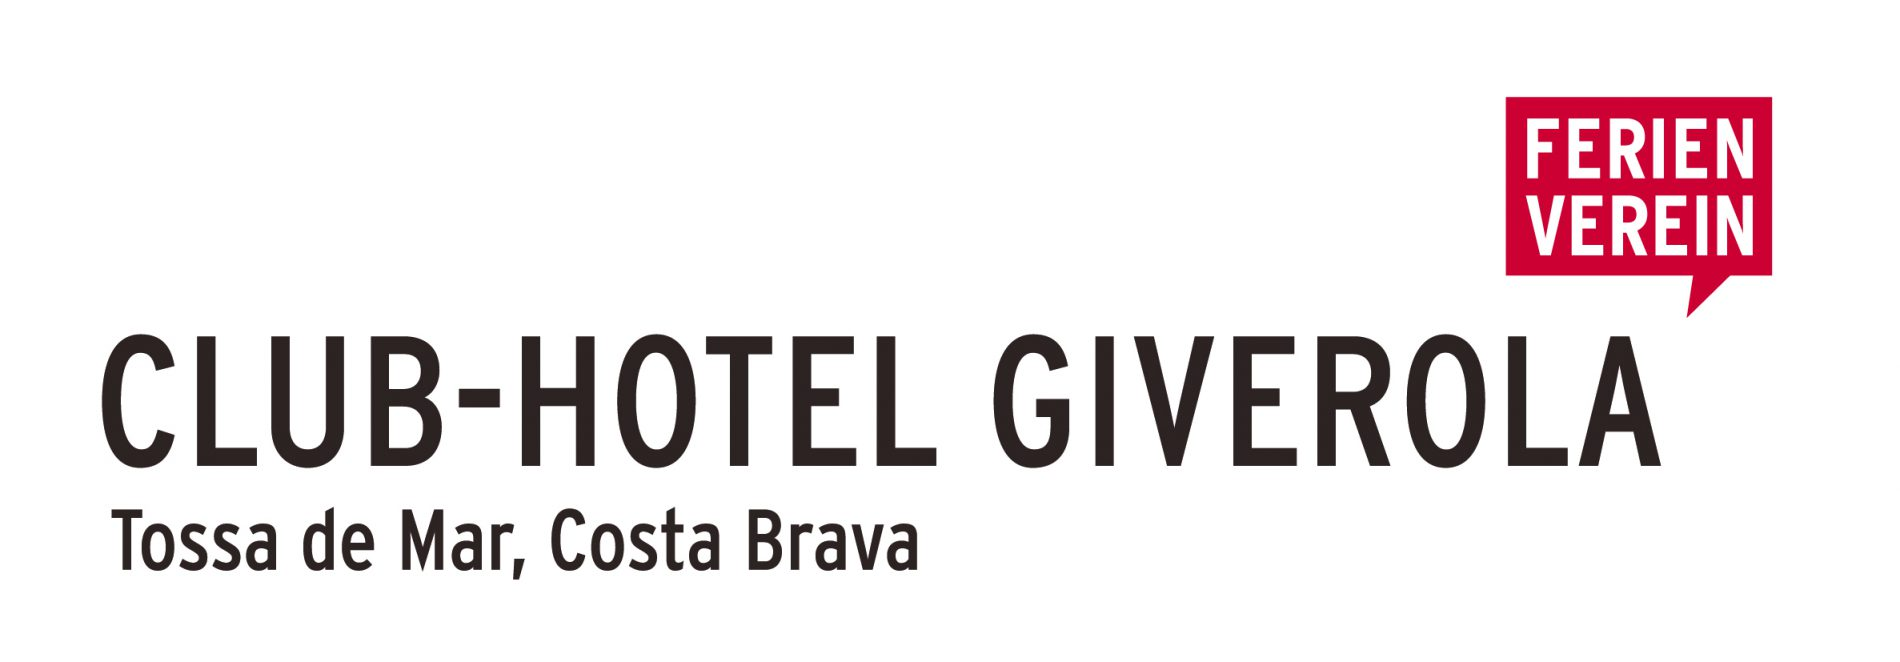 Giverola Resort Logo